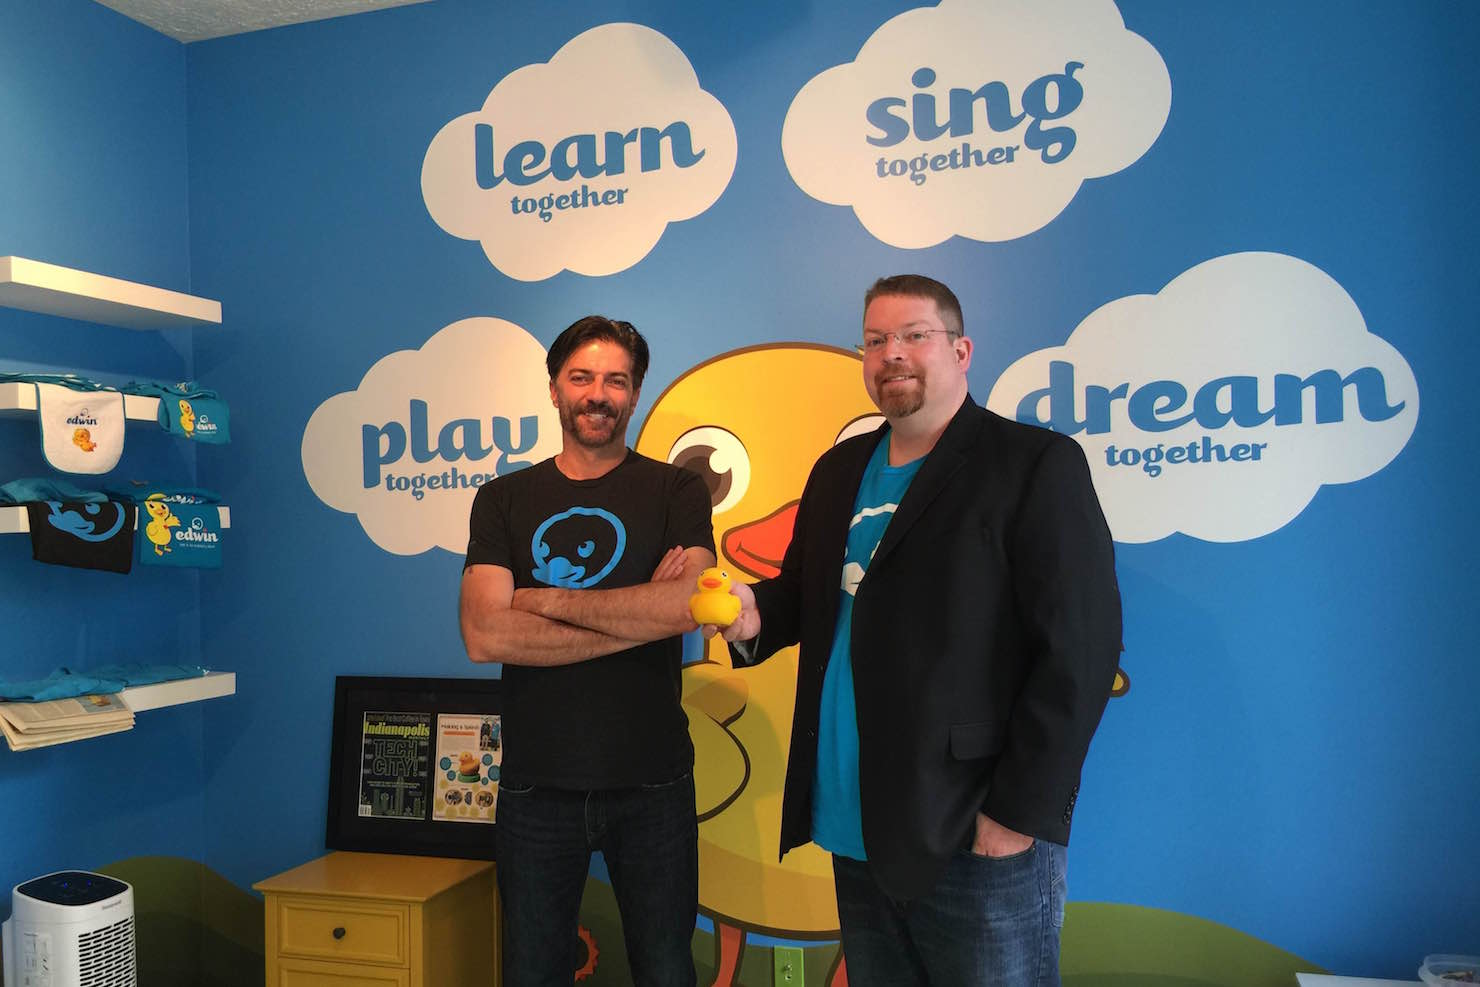 Edwin the Duck and Pi Lab founders Don Inmon (left) and Matt MacBeth